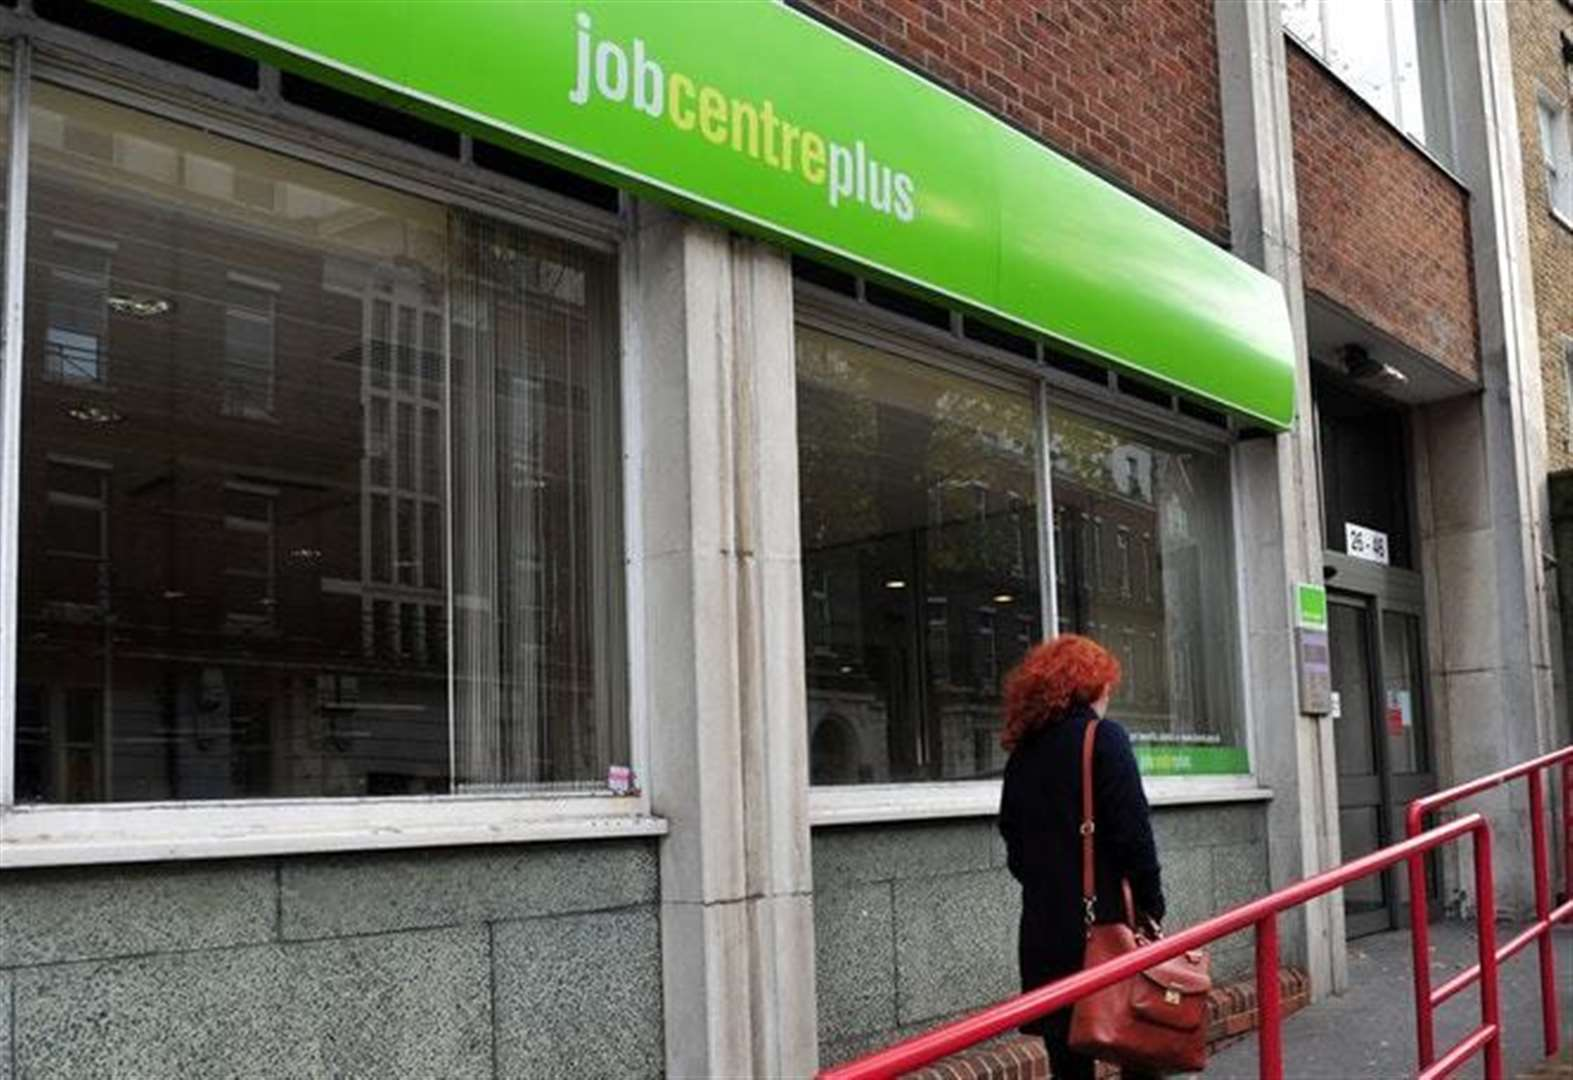 Universal credit 'to blame for rising evictions'